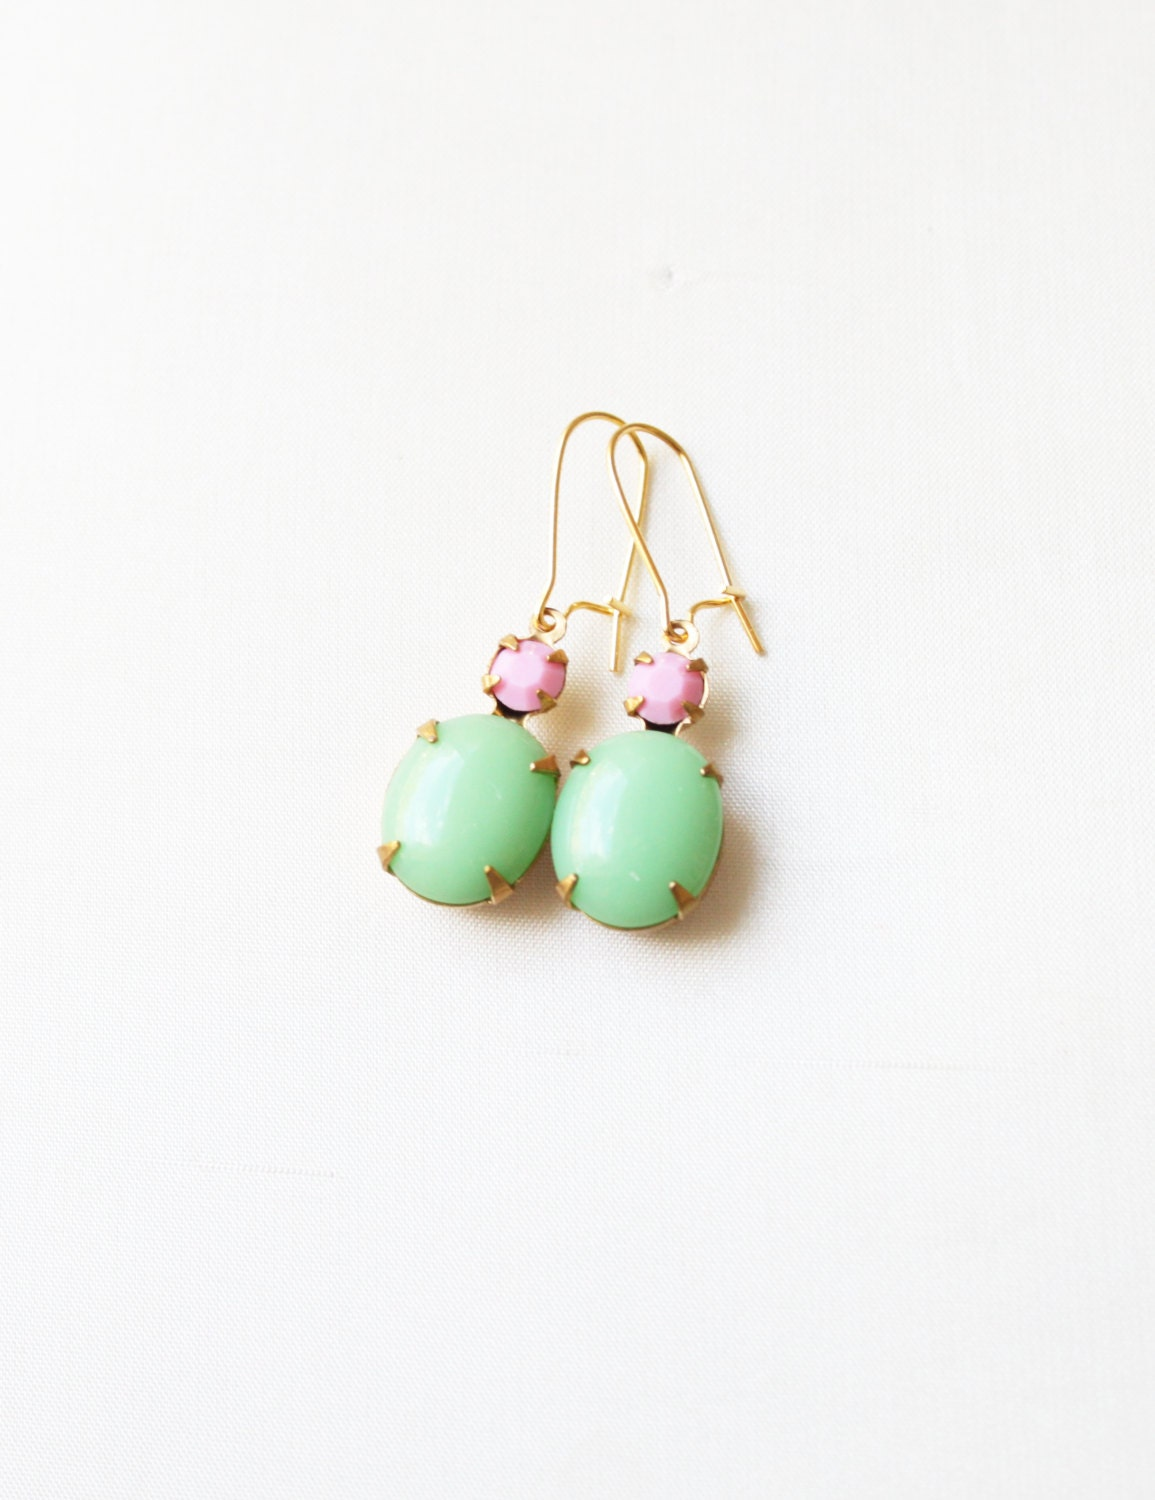 Vintage Spring Green and Pink Glass Cabochon Earrings, Set Stone Earrings, Colored Stone Earrings, Rhinestone Earrings, Bezel Earrings